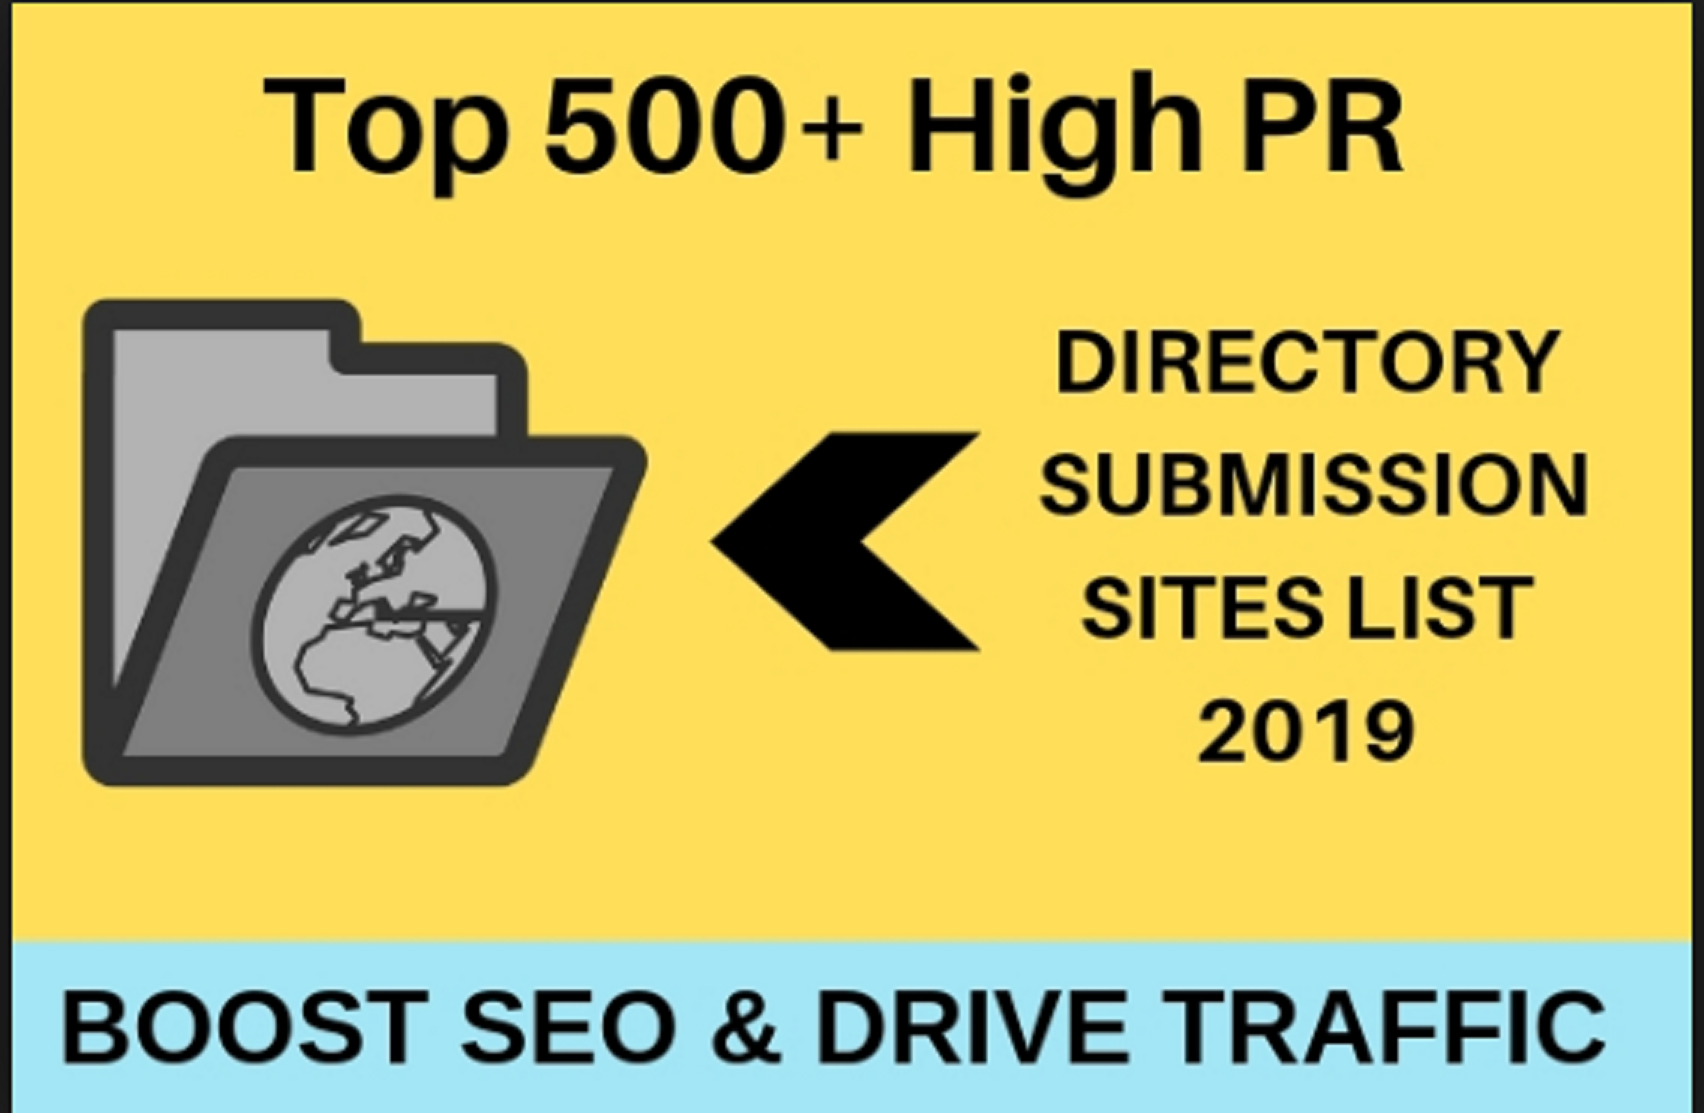 500 directoris submission your website 100% Secure